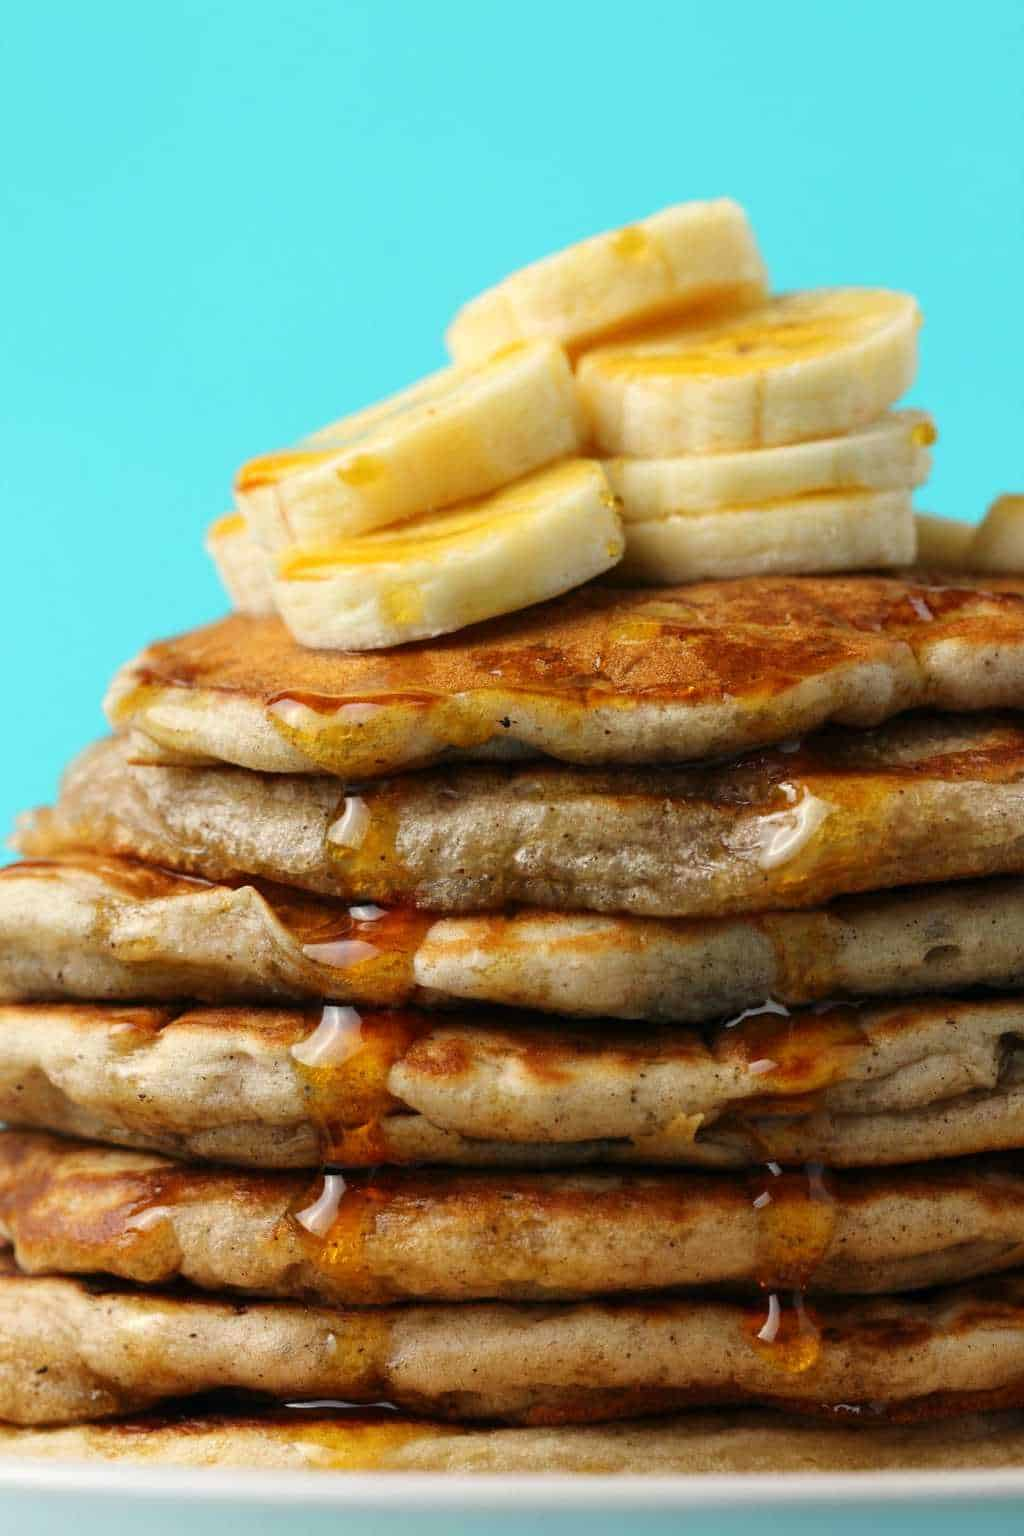 Vegan banana pancakes topped with sliced banana and syrup on a white plate.